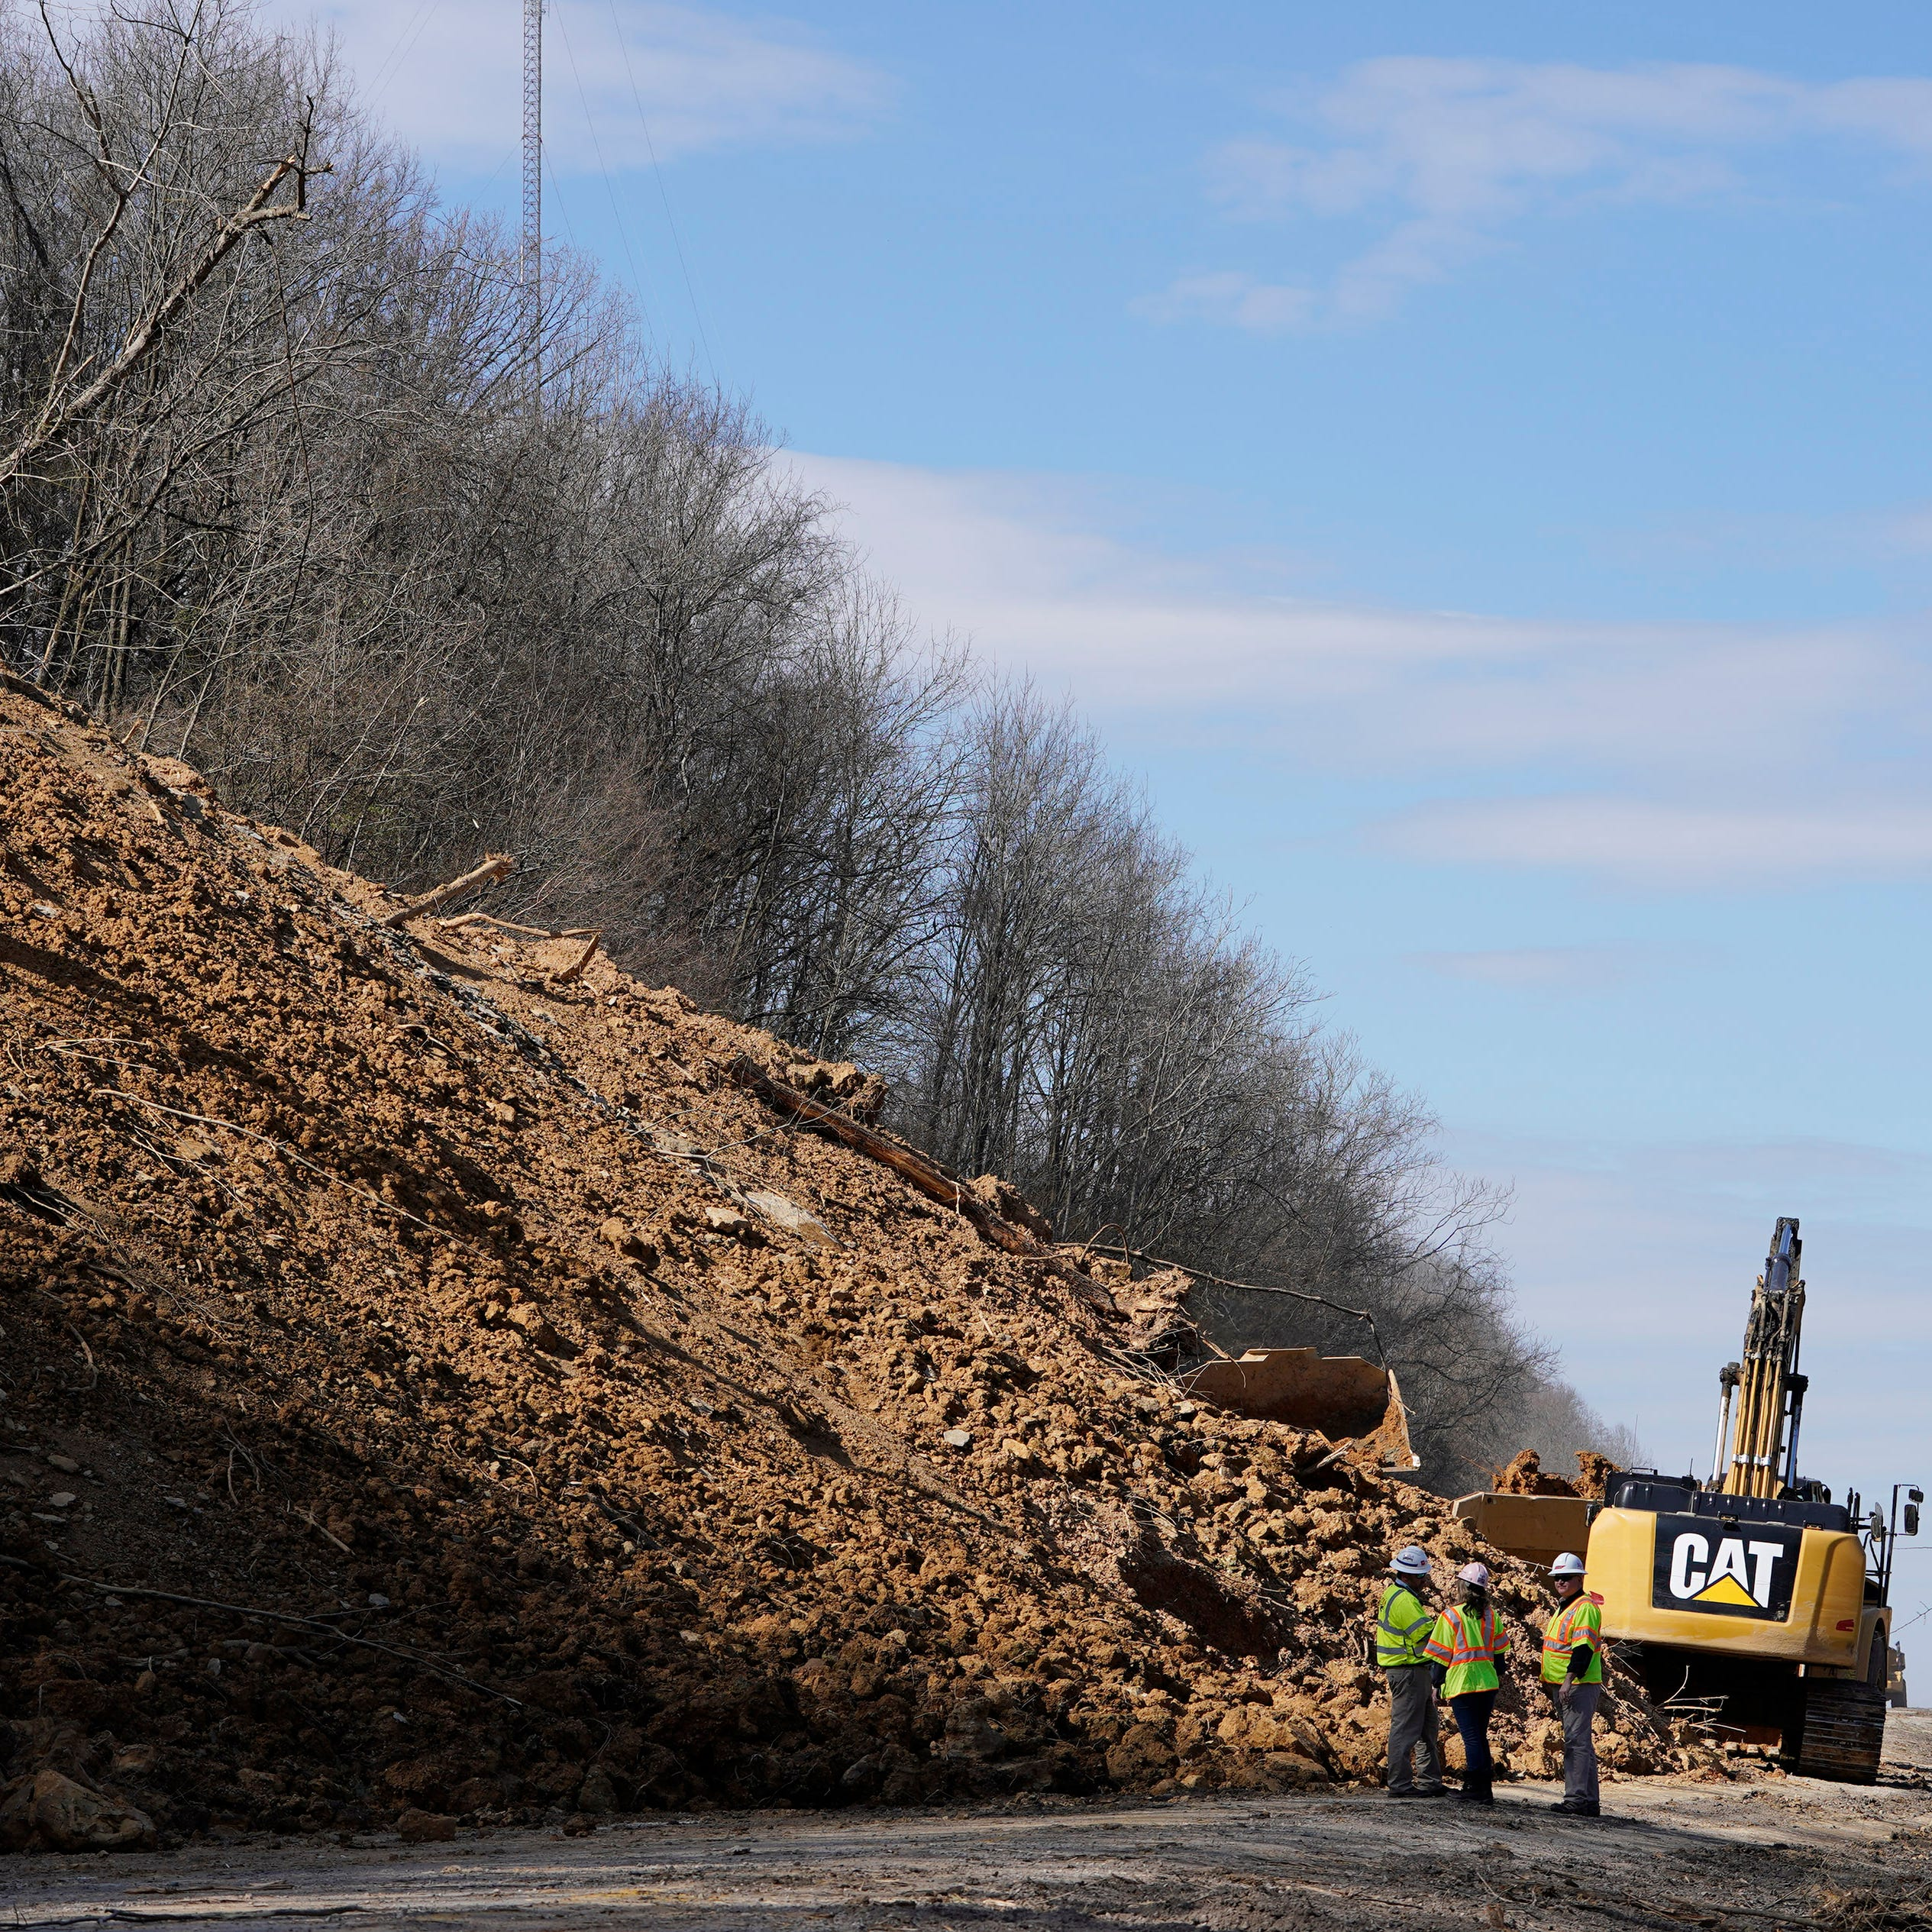 I-24 mudslide: Tons of debris on highway could keep interstate closed through mid March